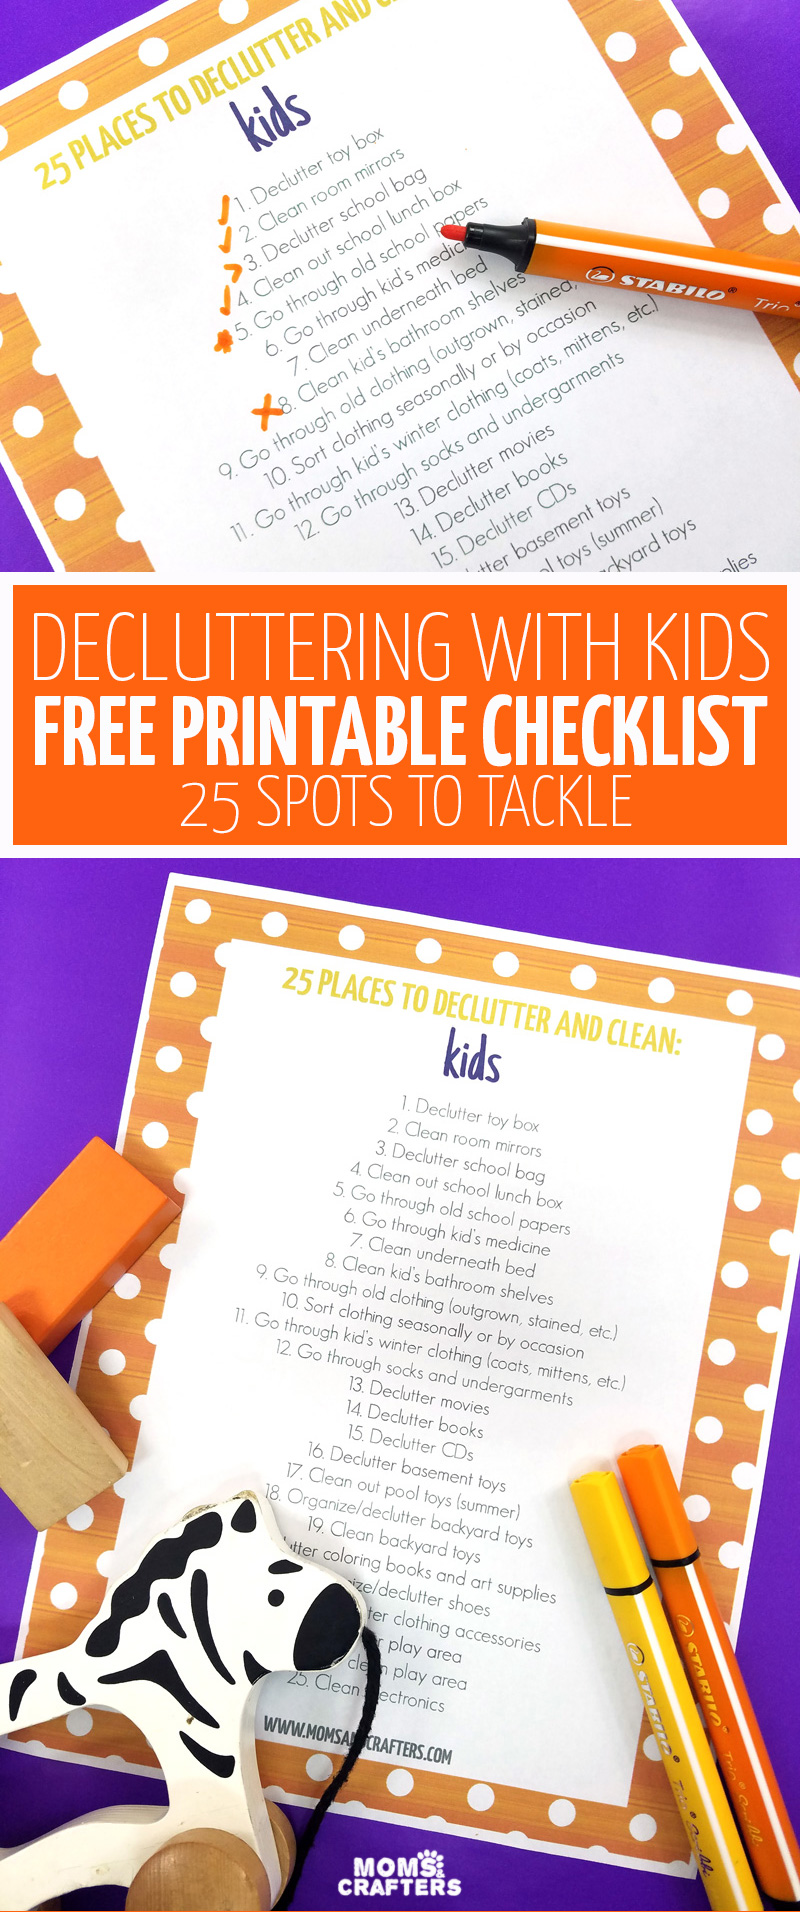 Ducluttering with kids is made simple with this easy to use organization checklist featuring 25 places to declutter and clean with children. You'll love this free printable organizing list for getting your playroom, kids rooms, and more in order. #organization #decluttering #kids